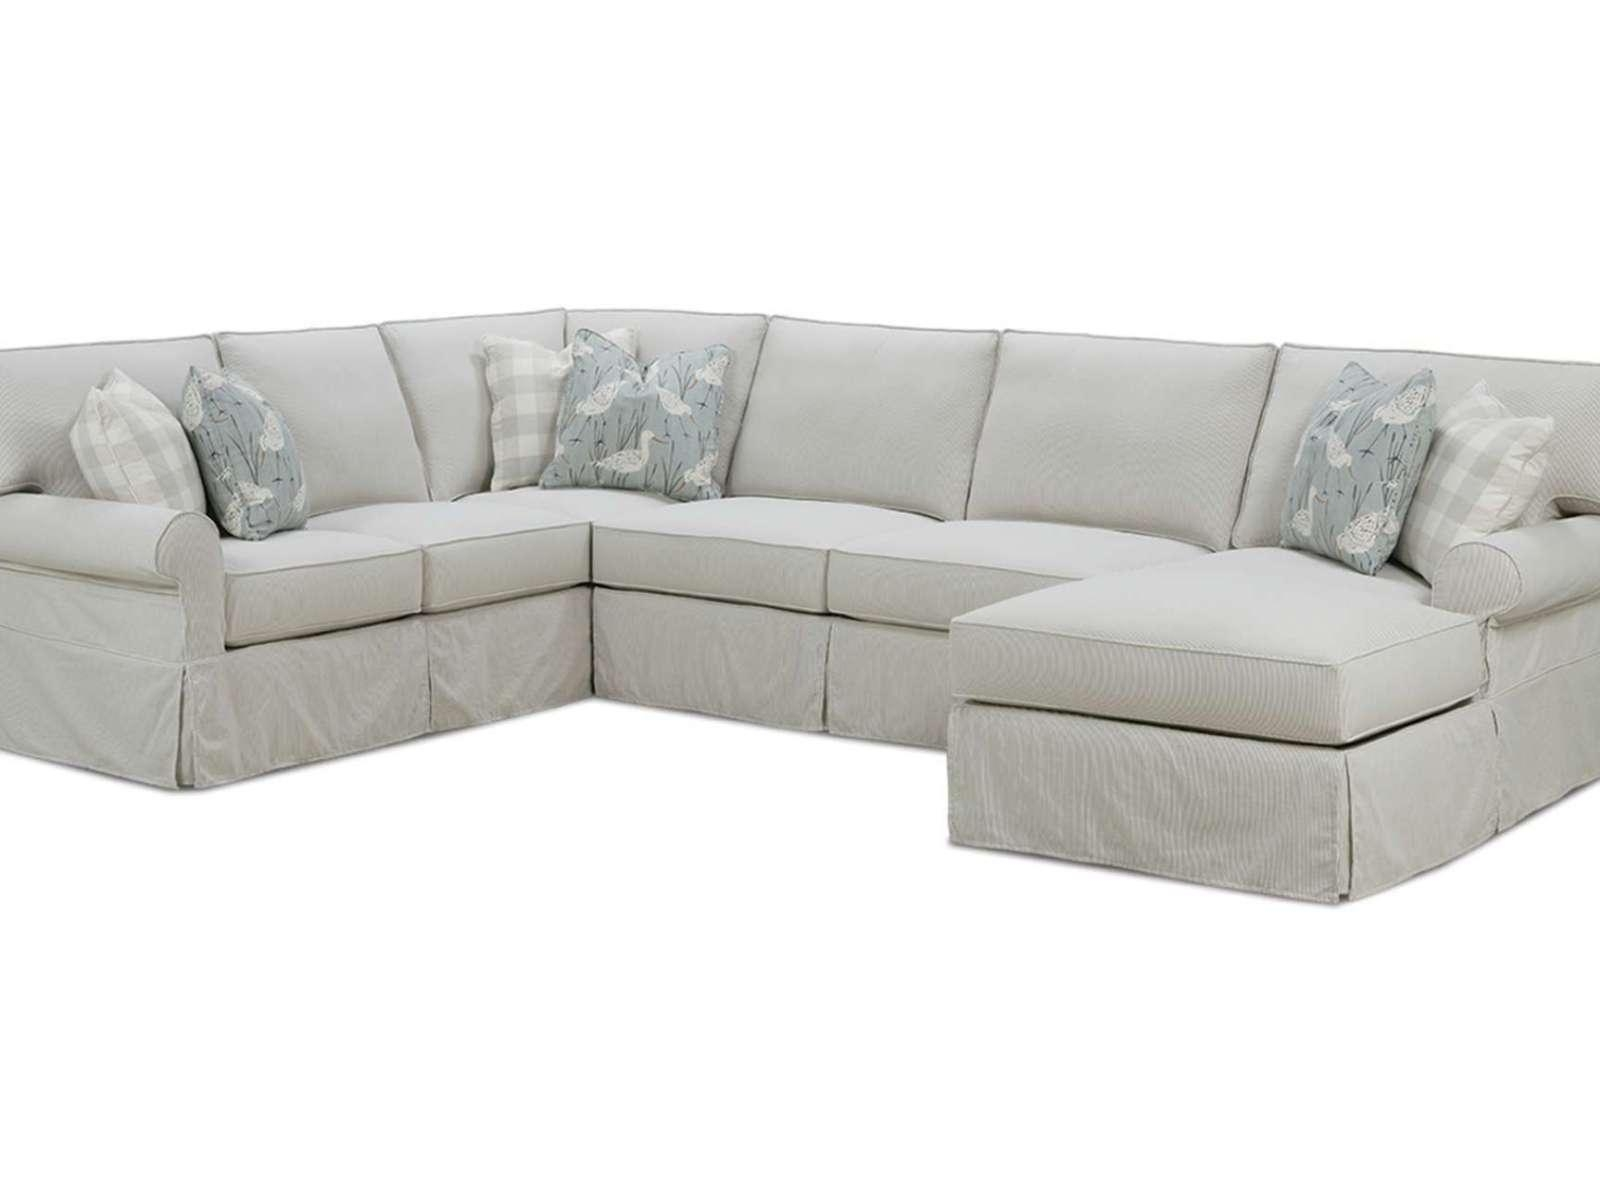 ▻ Sofa : 39 Slipcovers For Sectionals Bed Bath And Beyond With Regard To 3 Piece Sectional Sofa Slipcovers (View 10 of 20)